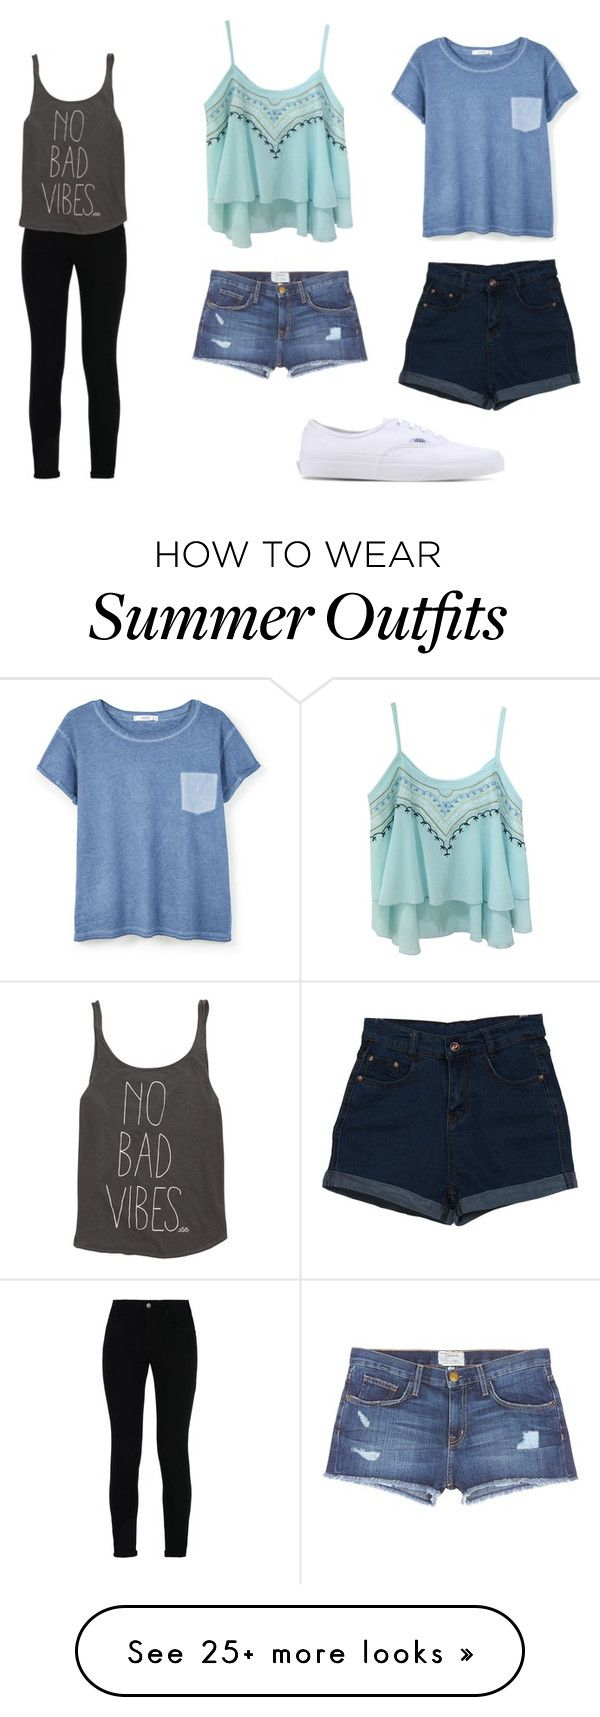 Fashion week How to summer wear outfits for girls